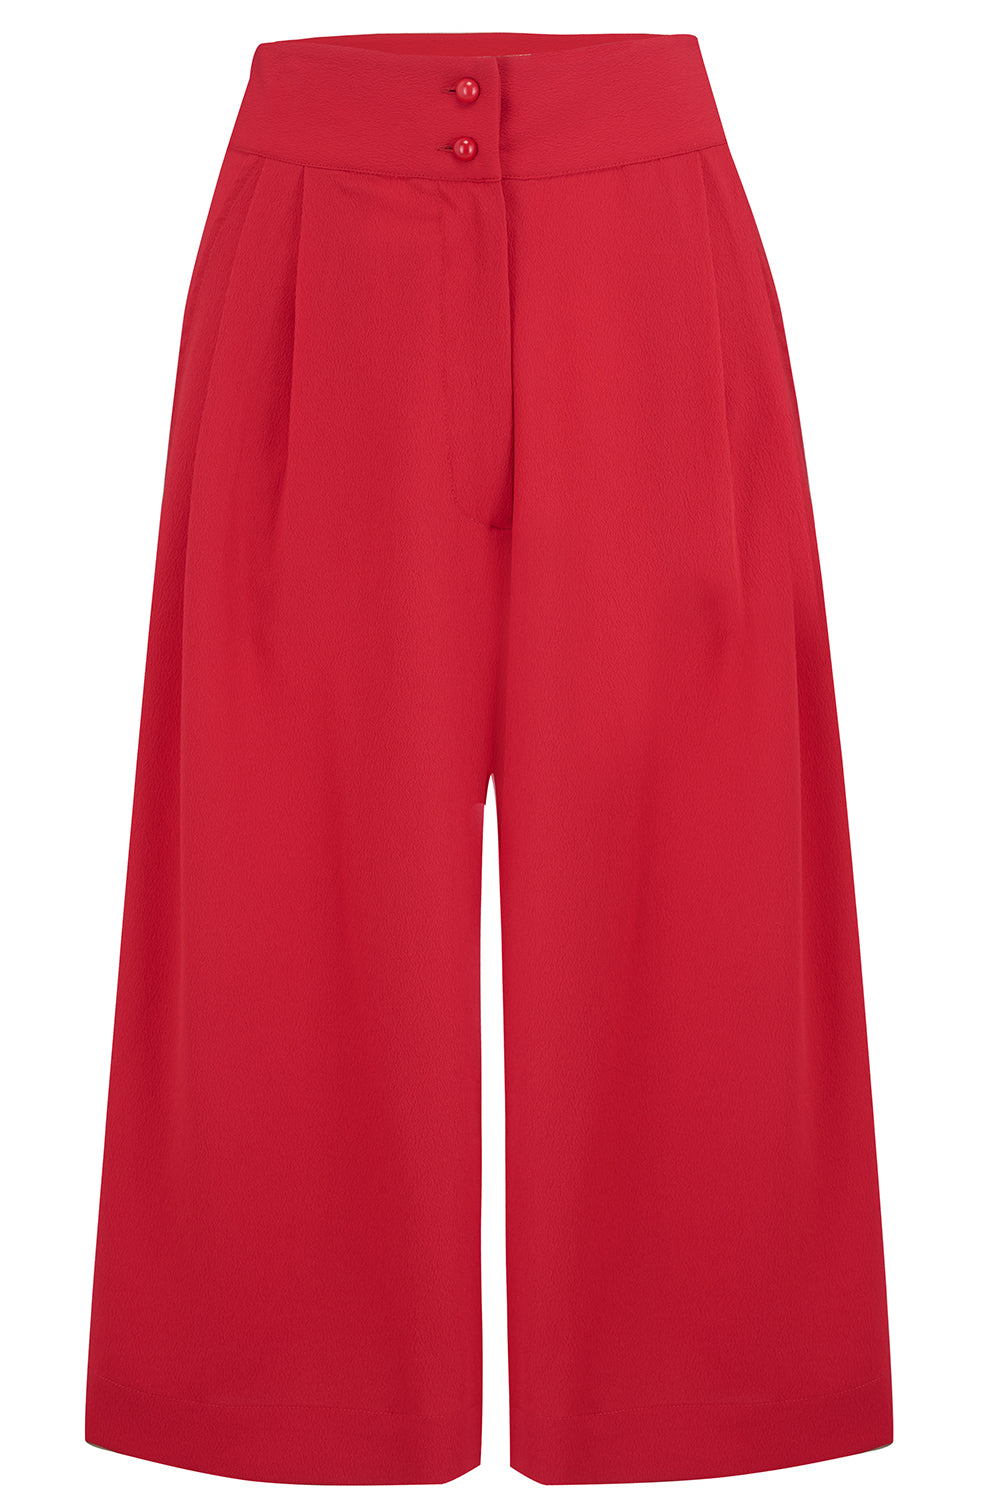 "Rock n Romance ""Sophia"" Culottes in Solid Red, Authentic 1950s Vintage Style - RocknRomance Clothing"